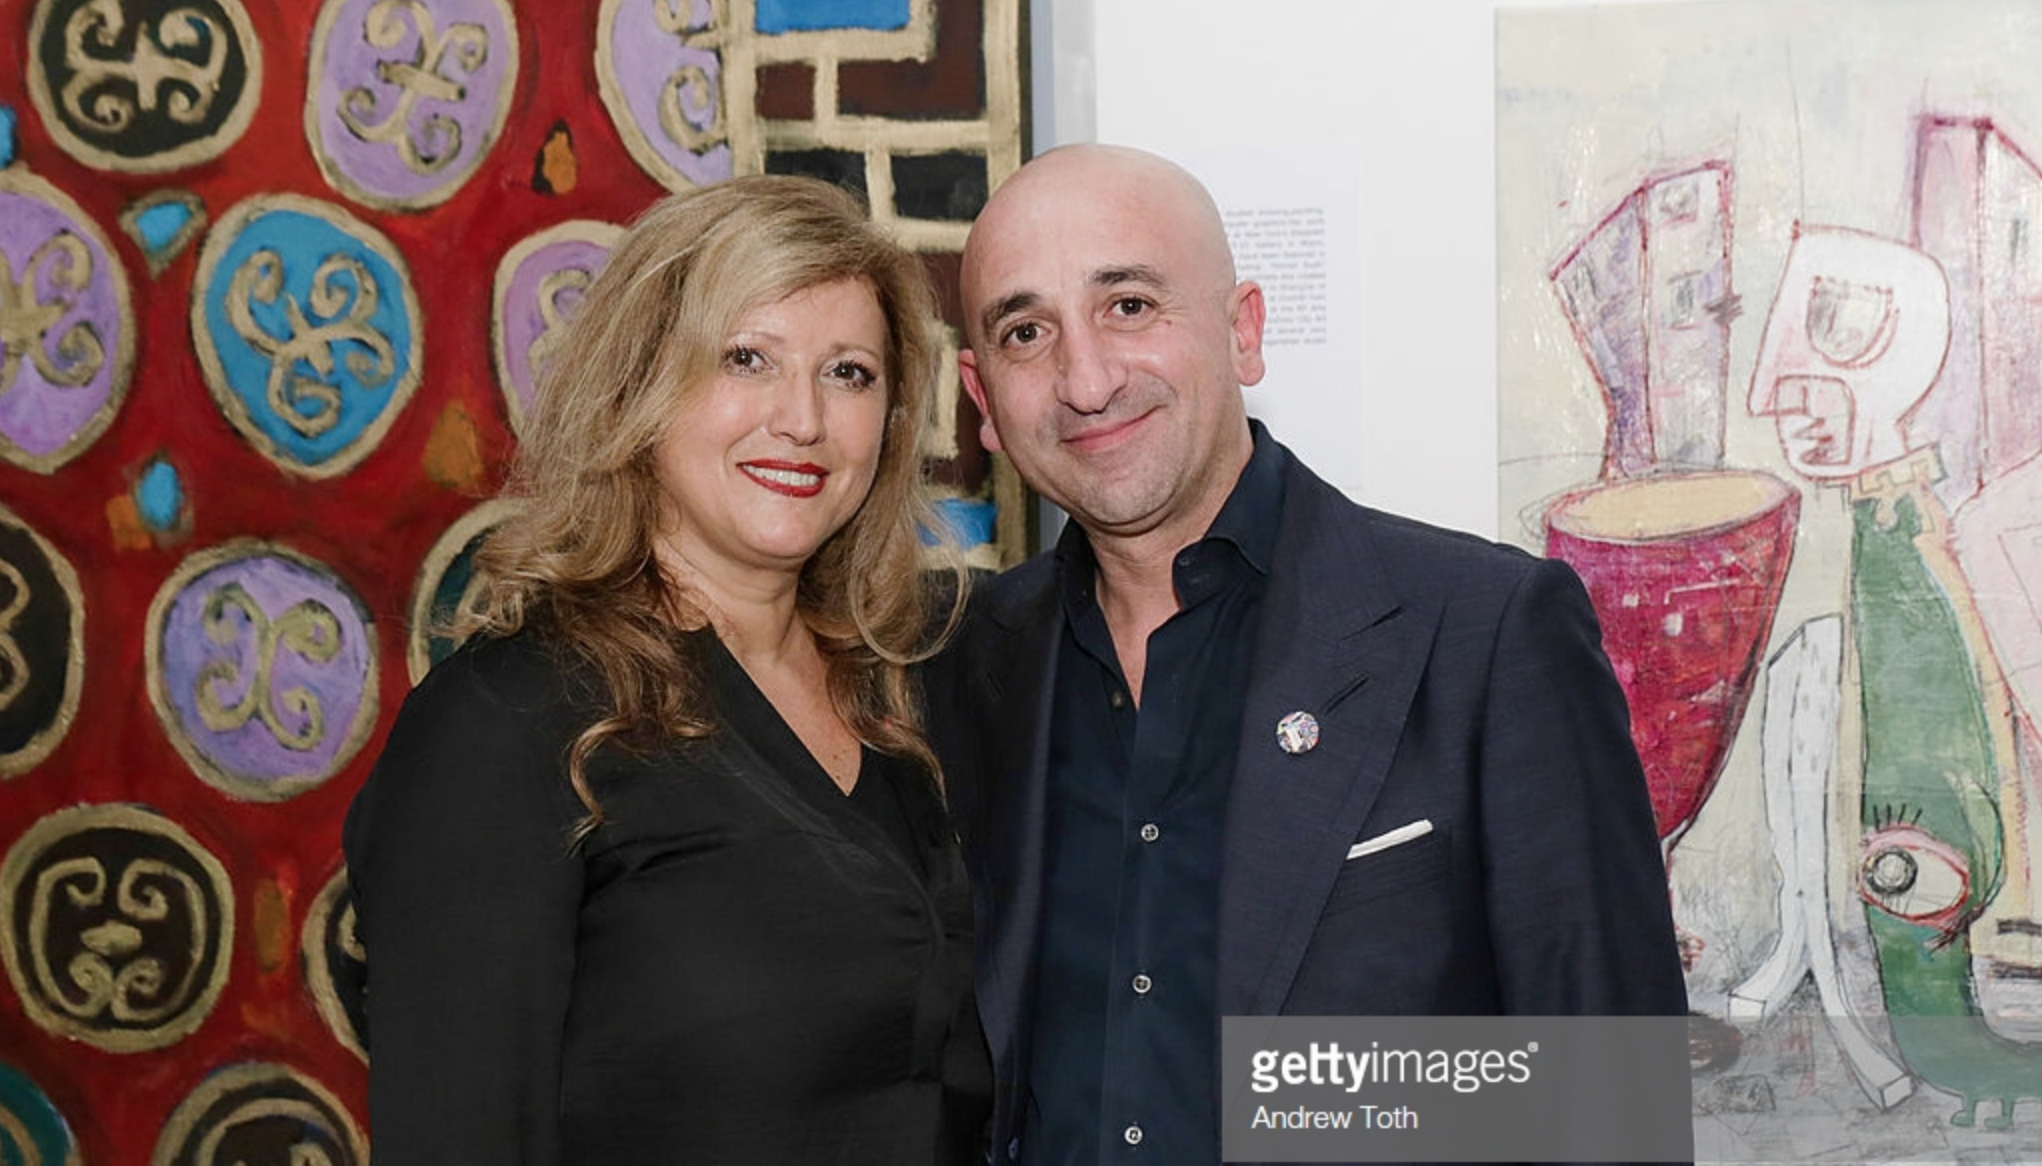 Clen gallery art exhibition - Publication by Getty Images